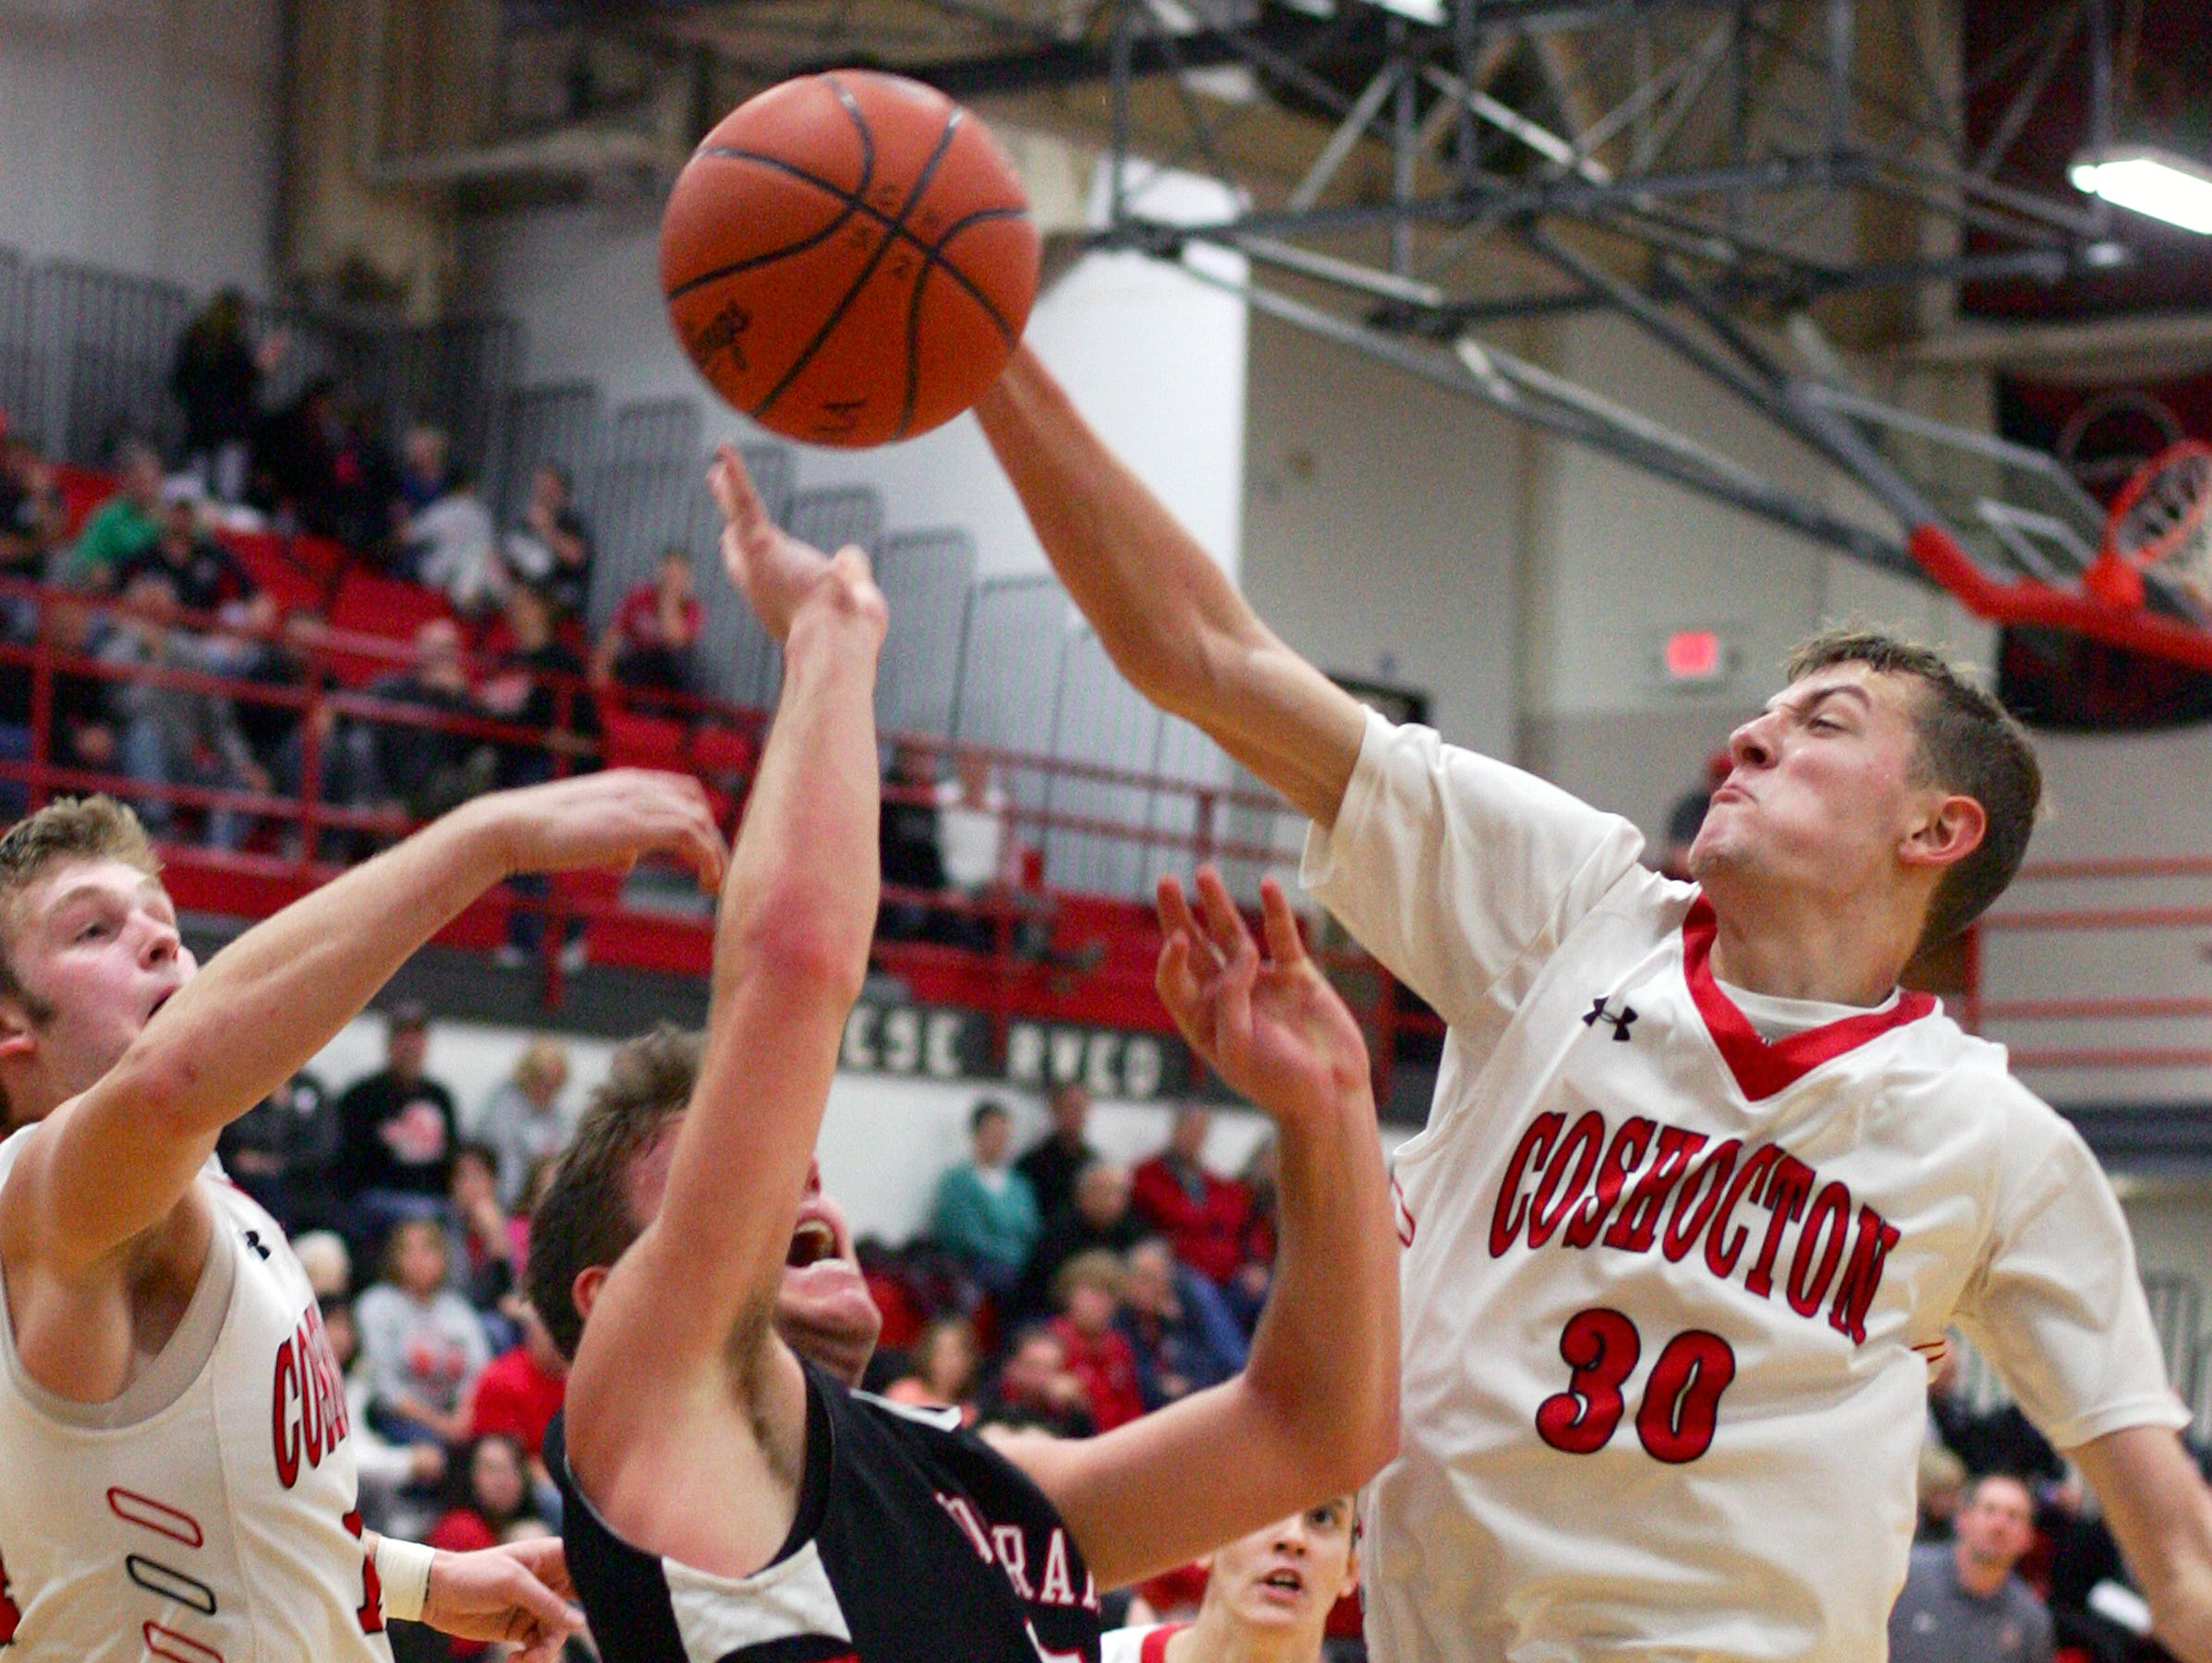 Coshocton senior Conner Roahrig swats the ball from Bishop Rosecrans senior Dominic Mohr Friday during Coshocton's 69-68 loss in overtime.